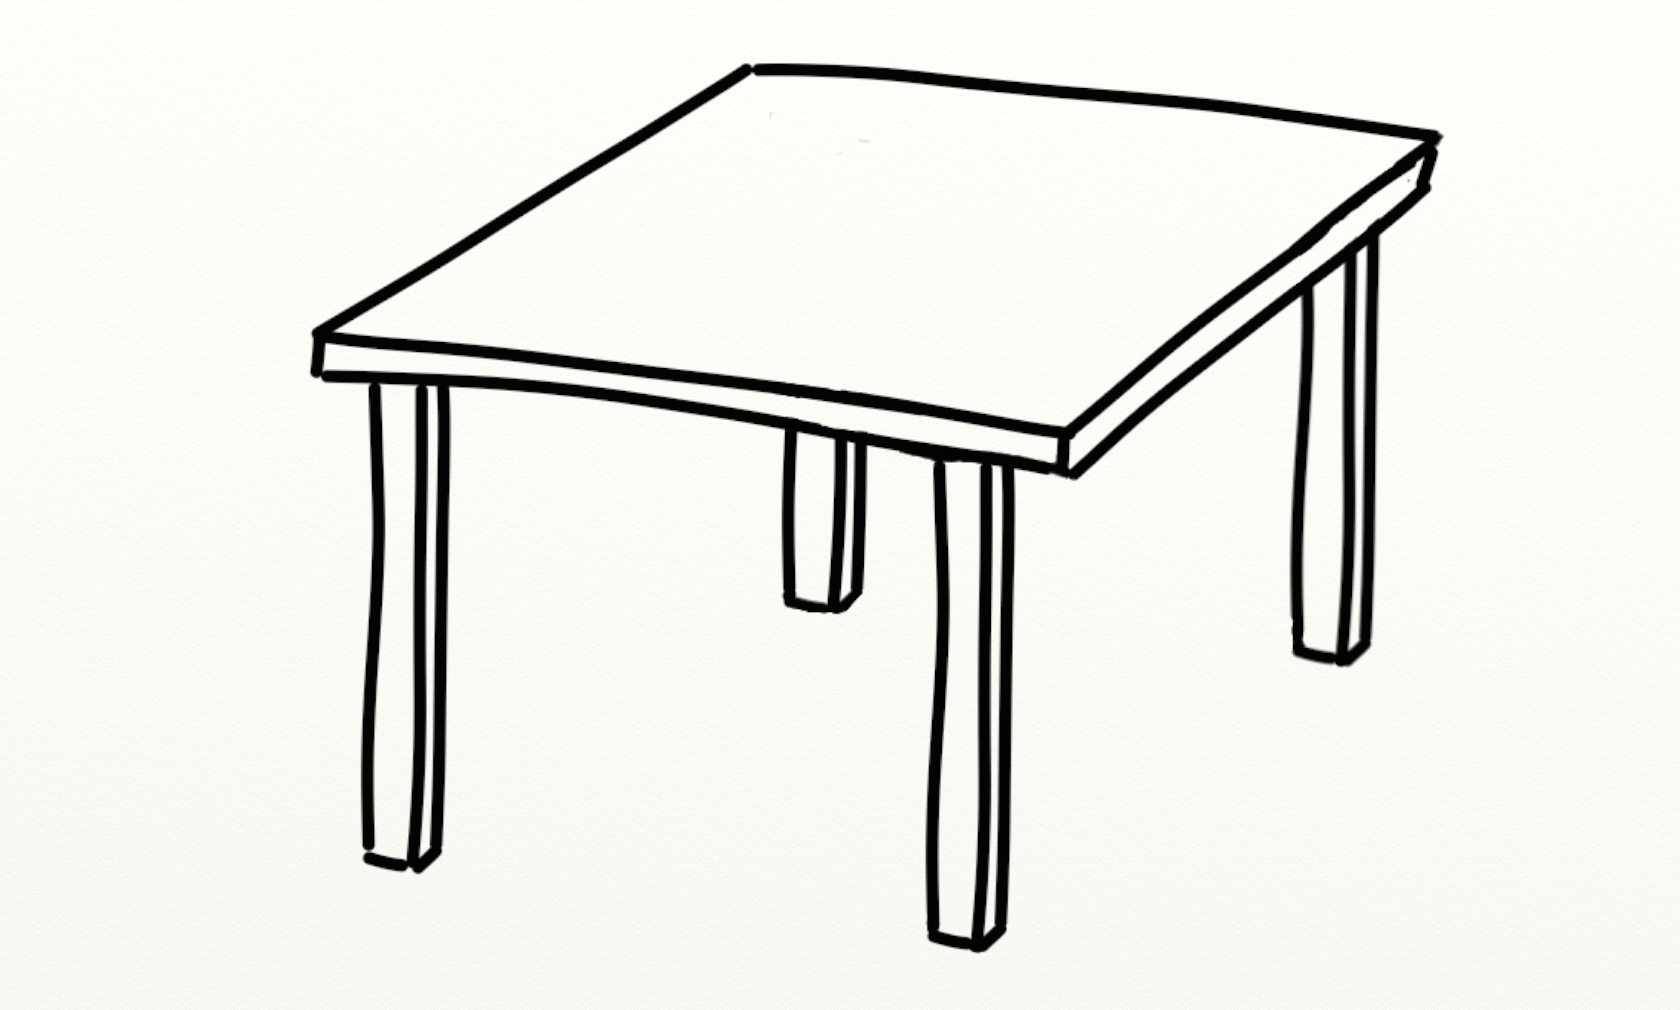 1680x1010 Desk Clipart Black And White